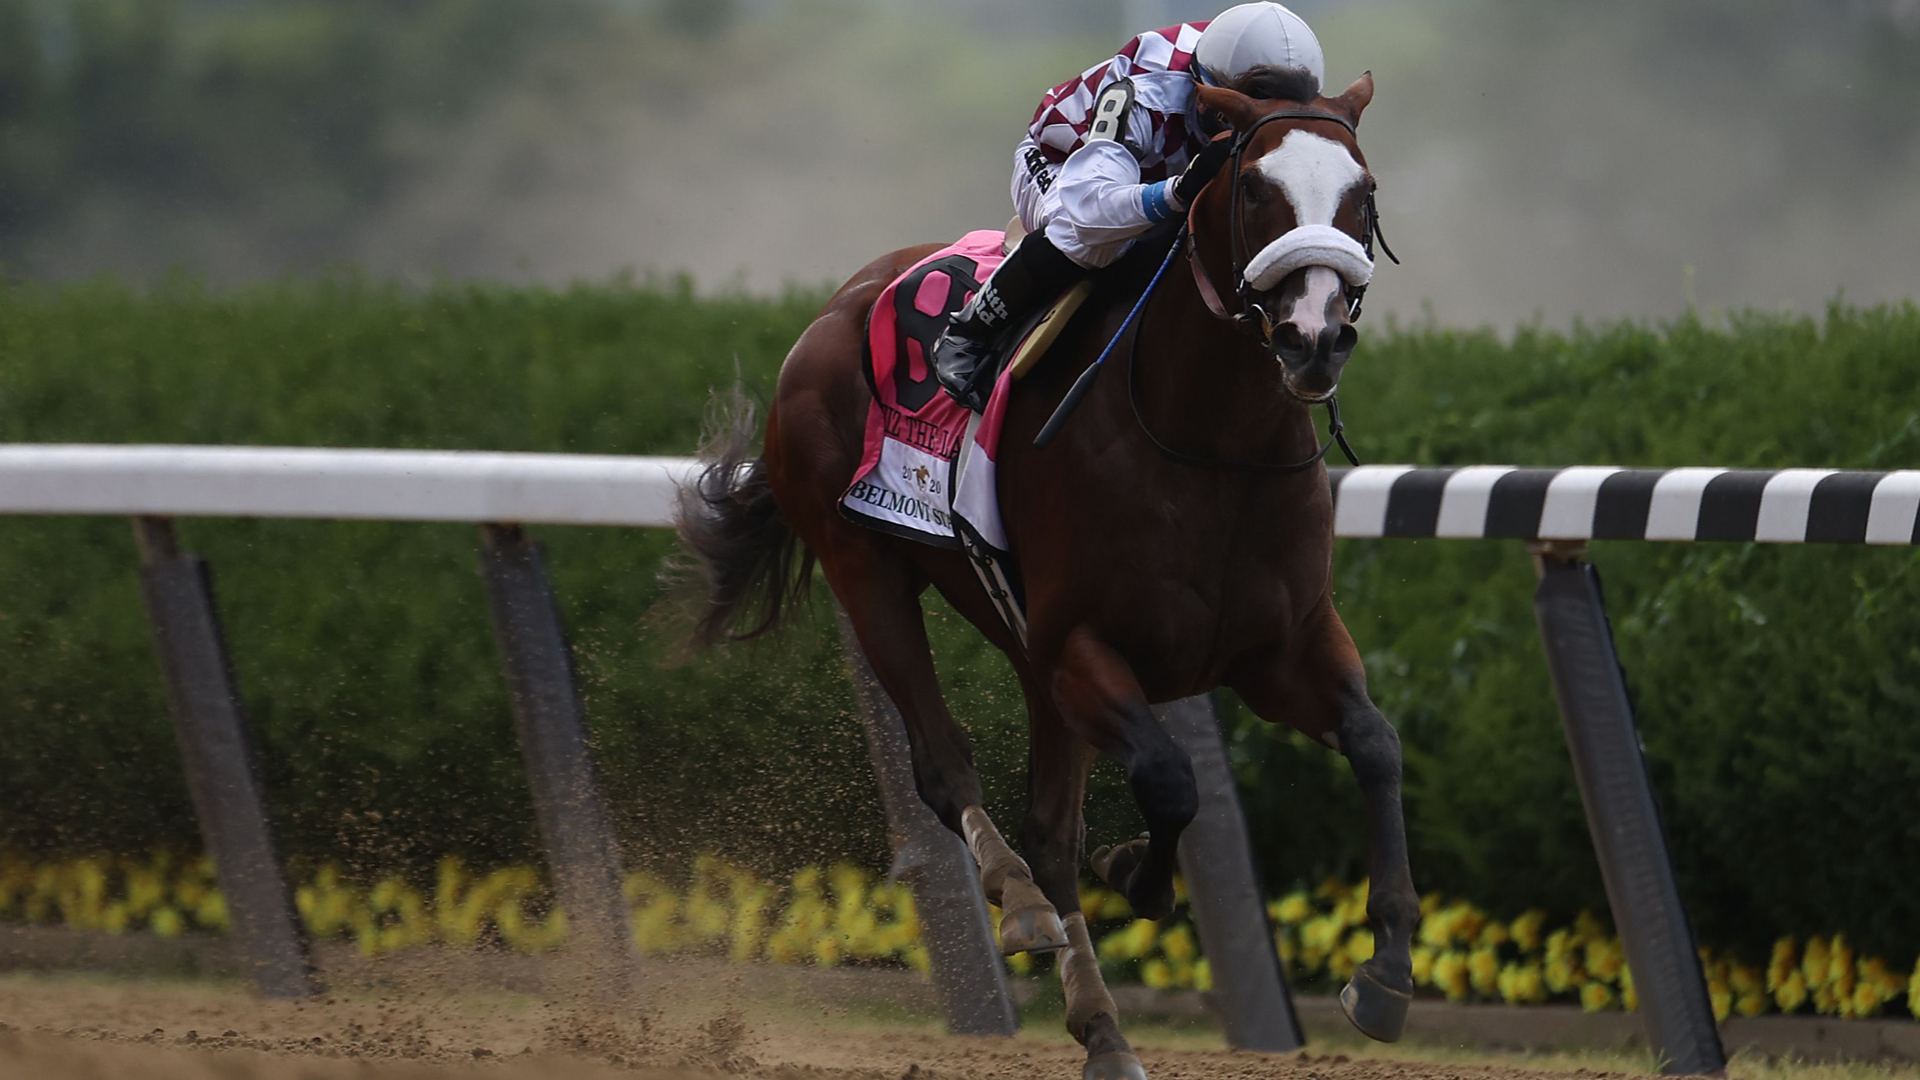 Who won the Belmont Stakes in 2020? Full results, finish order & highlights from the race